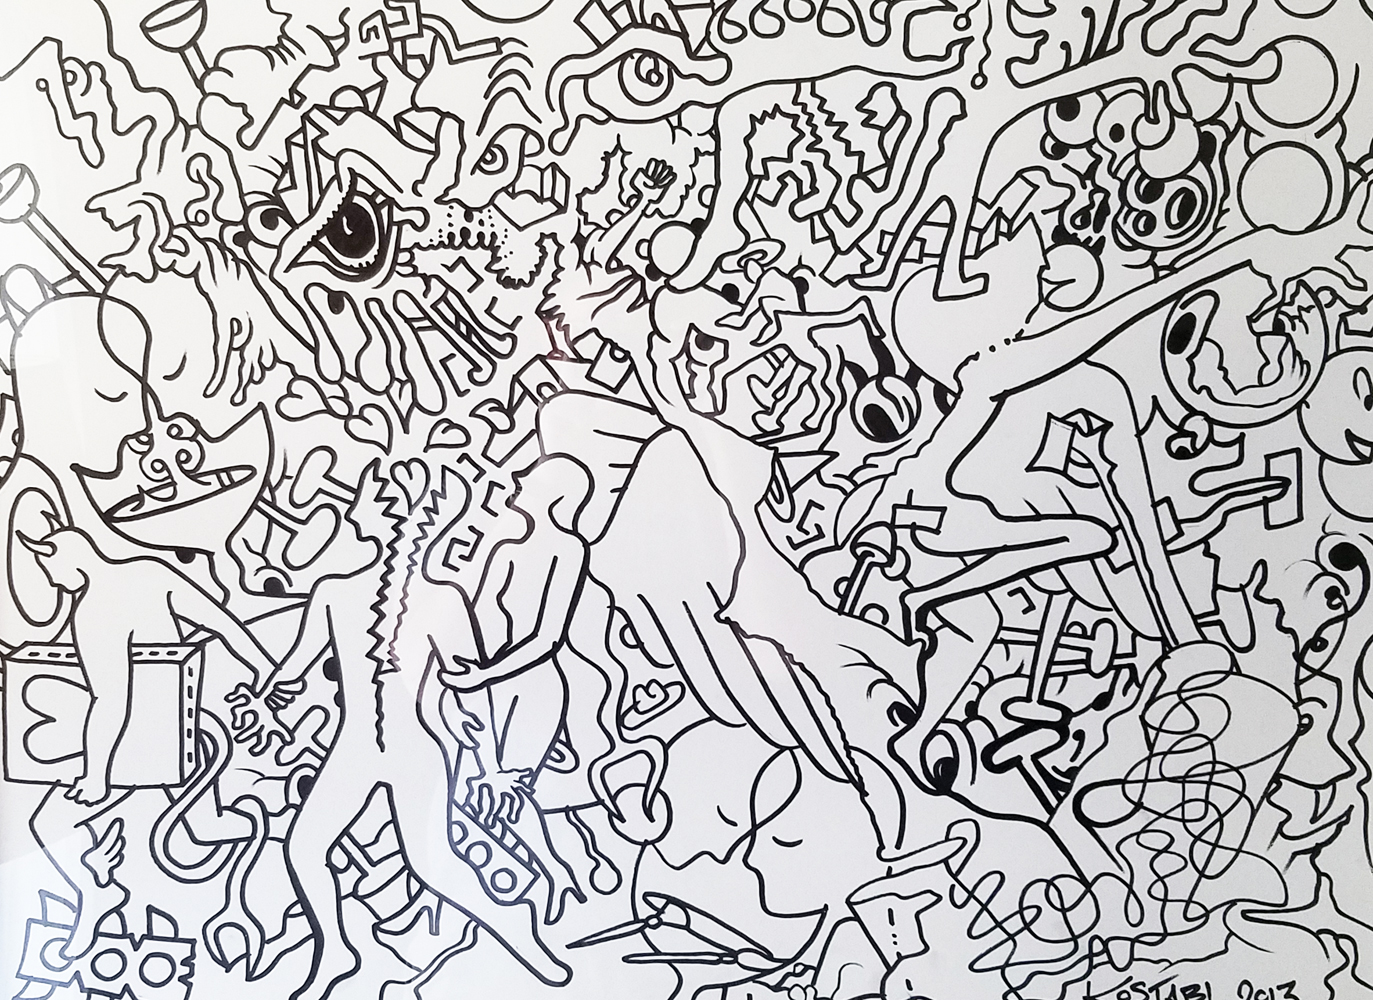 Full Disclosure Drawing 2014 45x45